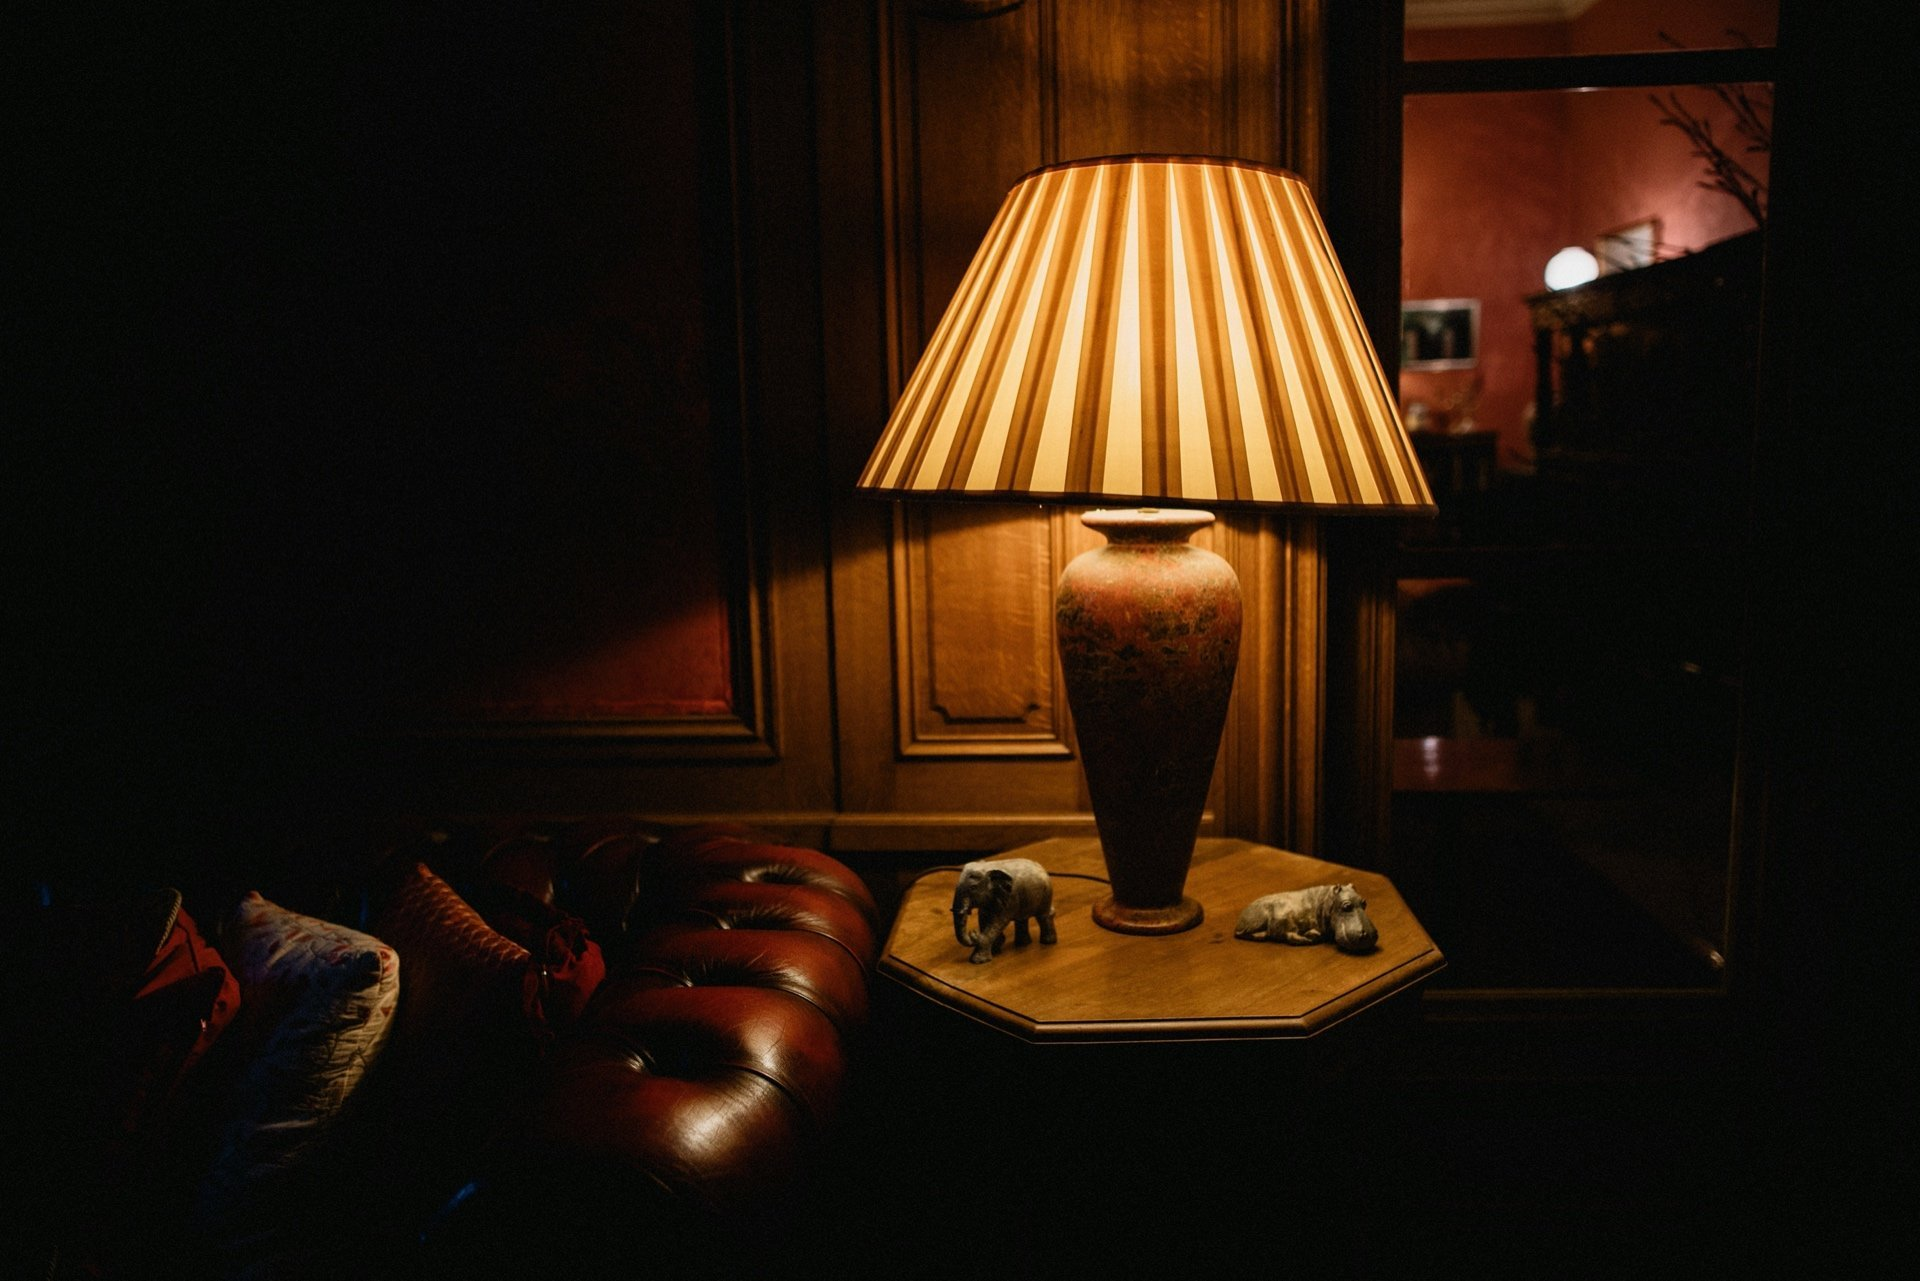 lit lamp in the dark interior at craigengillan mansion house